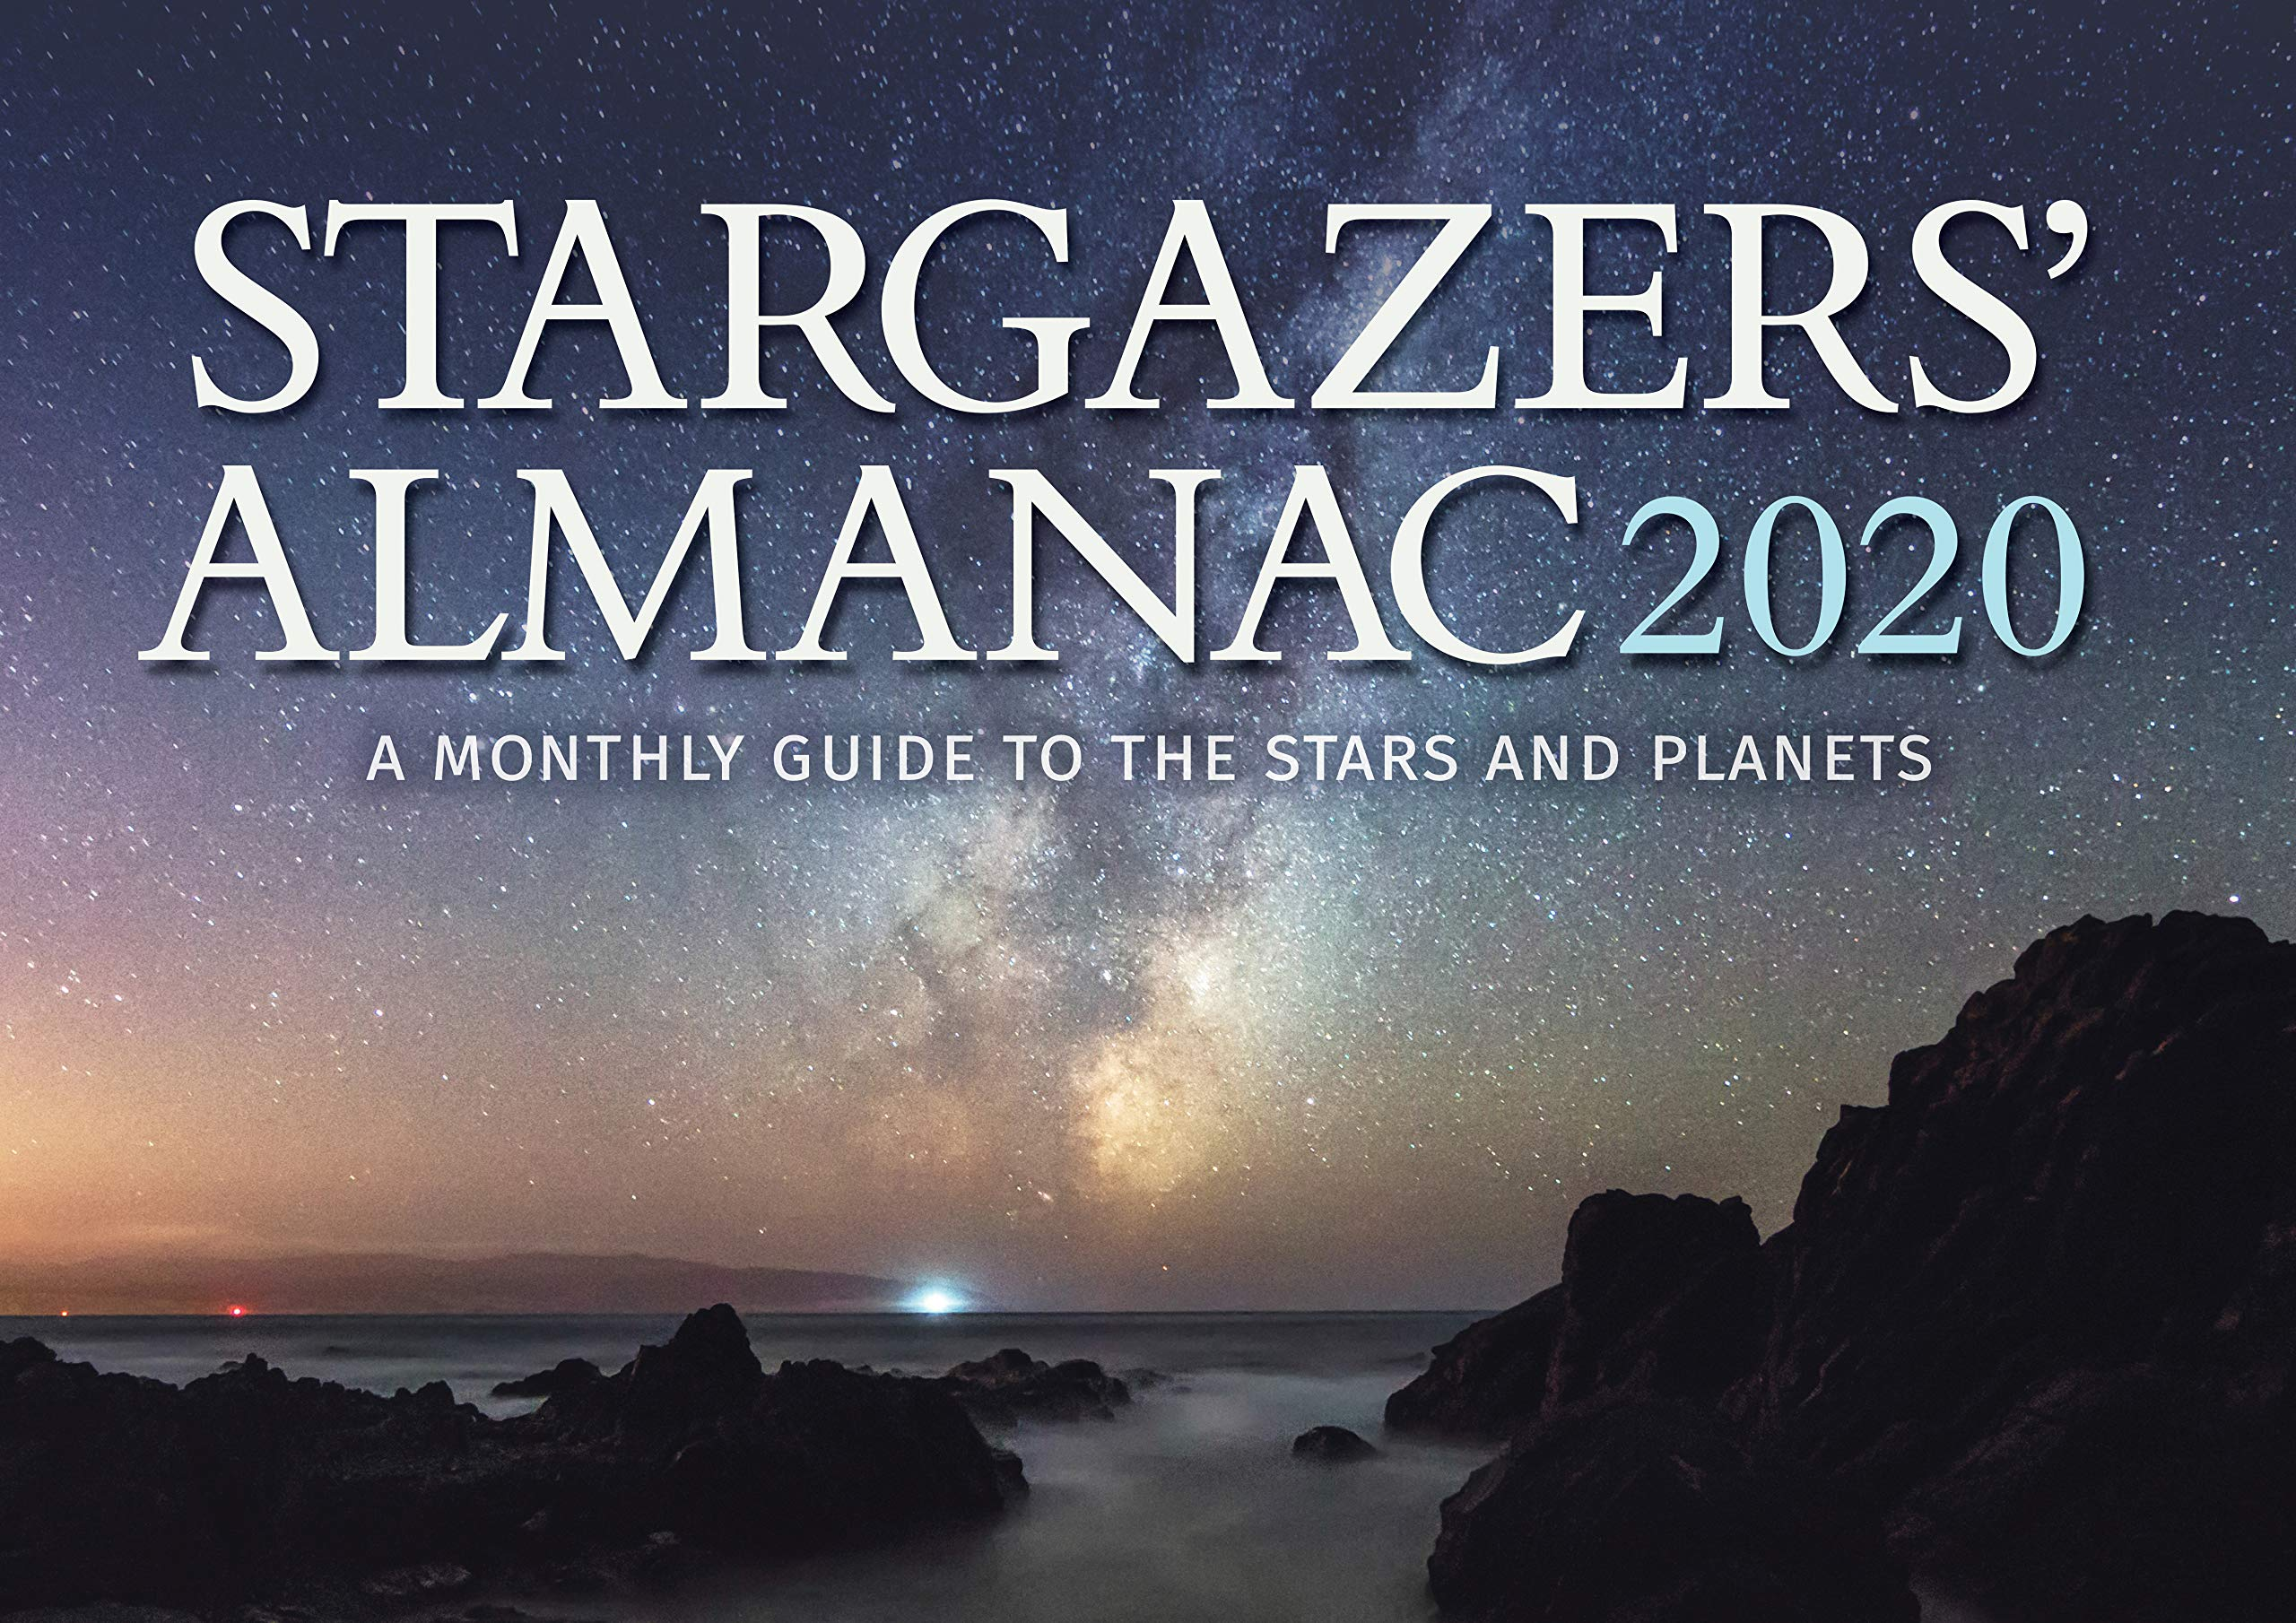 Starry Nights 2020: 16-Month Calendar - September 2020 Through December 2020 Stargazers' Almanac: A Monthly Guide to the Stars and Planets